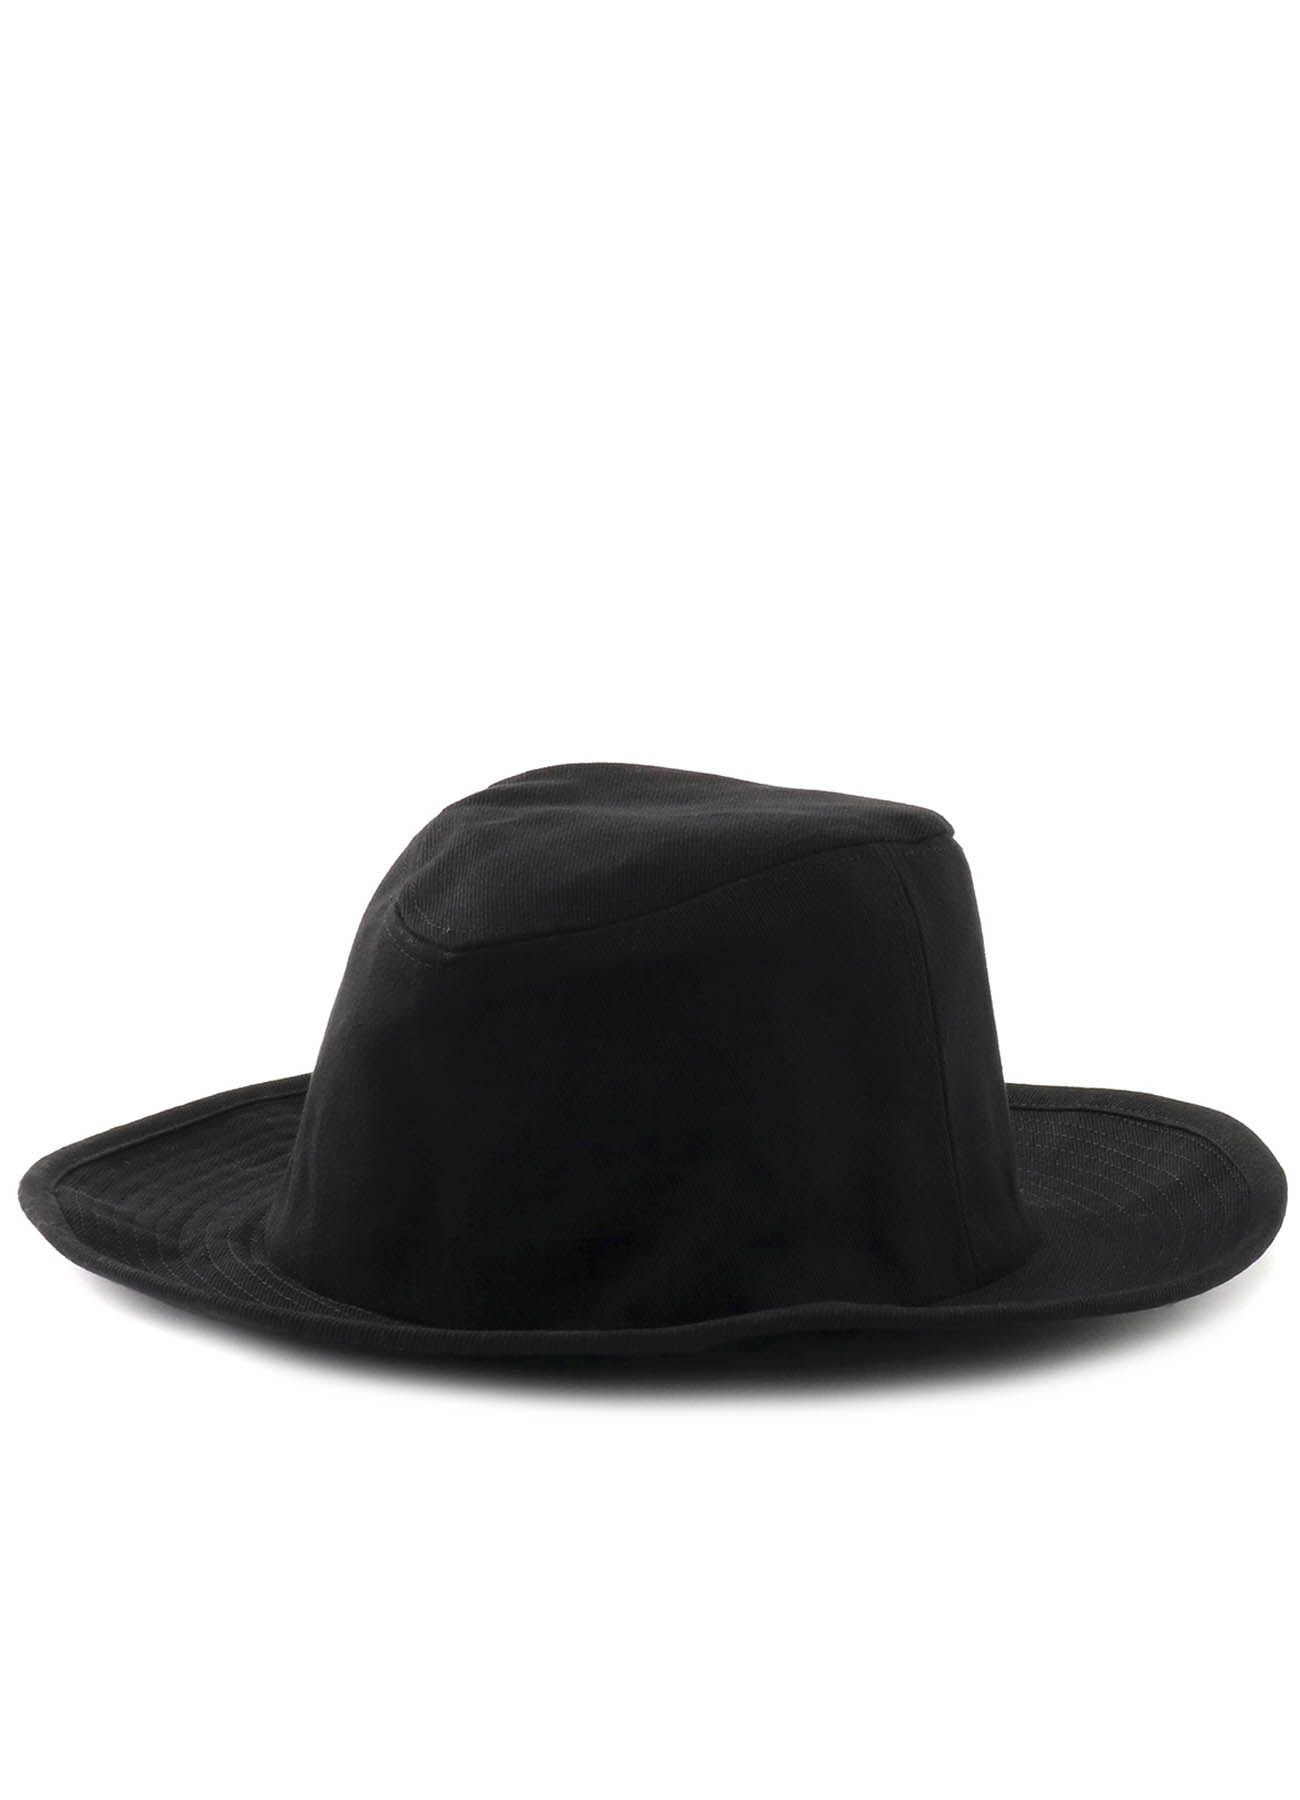 Cotton Twill Long Brim Hat